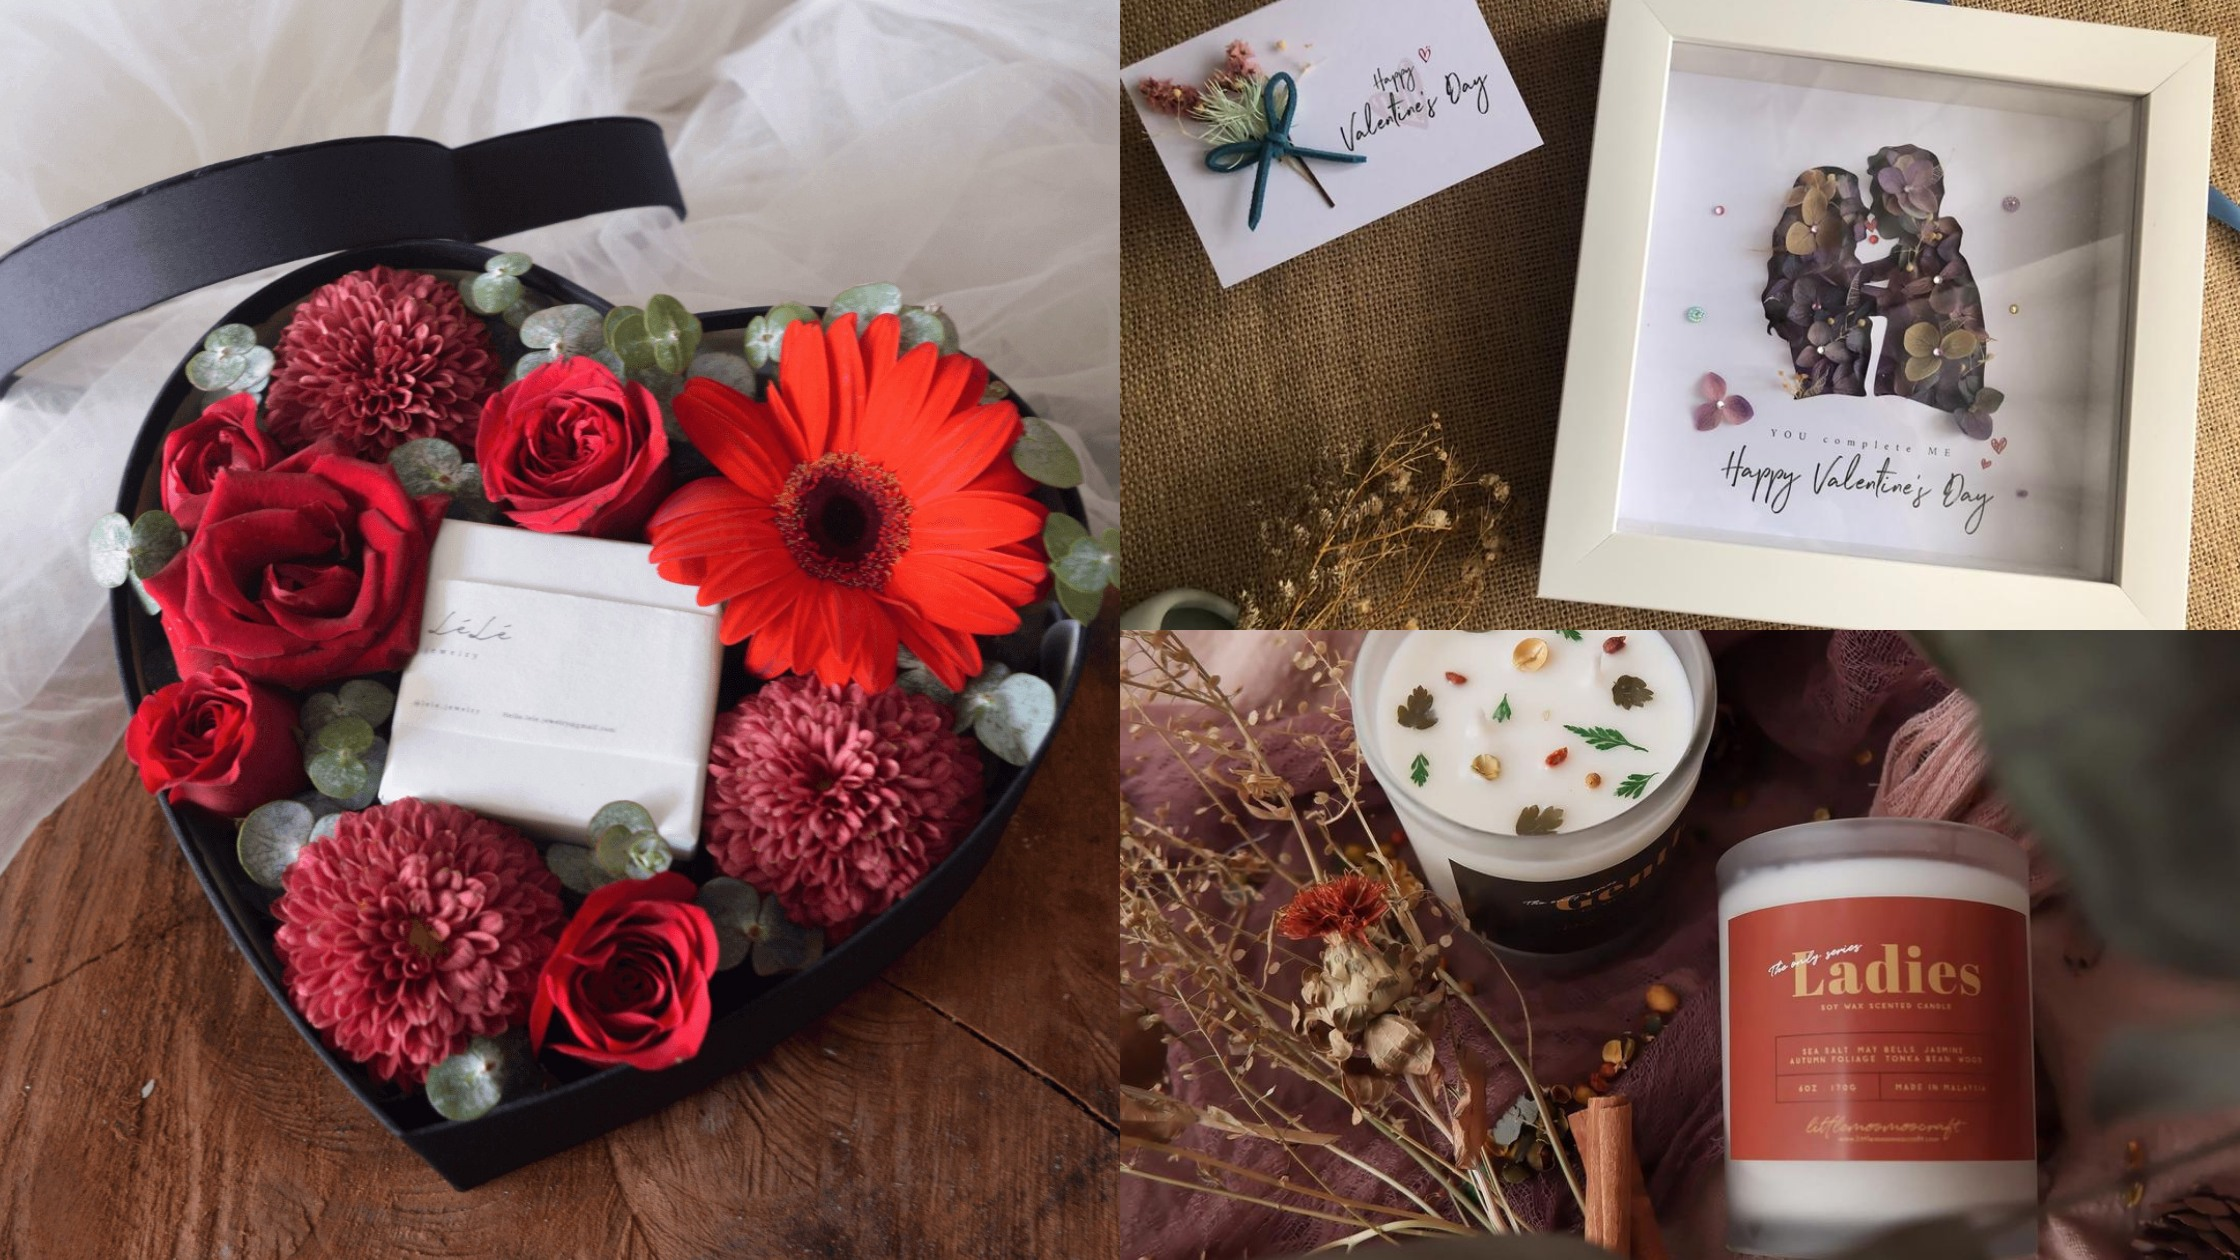 The Best Valentine's Day Gift Guide For The Perfect Gift For Him or For Her